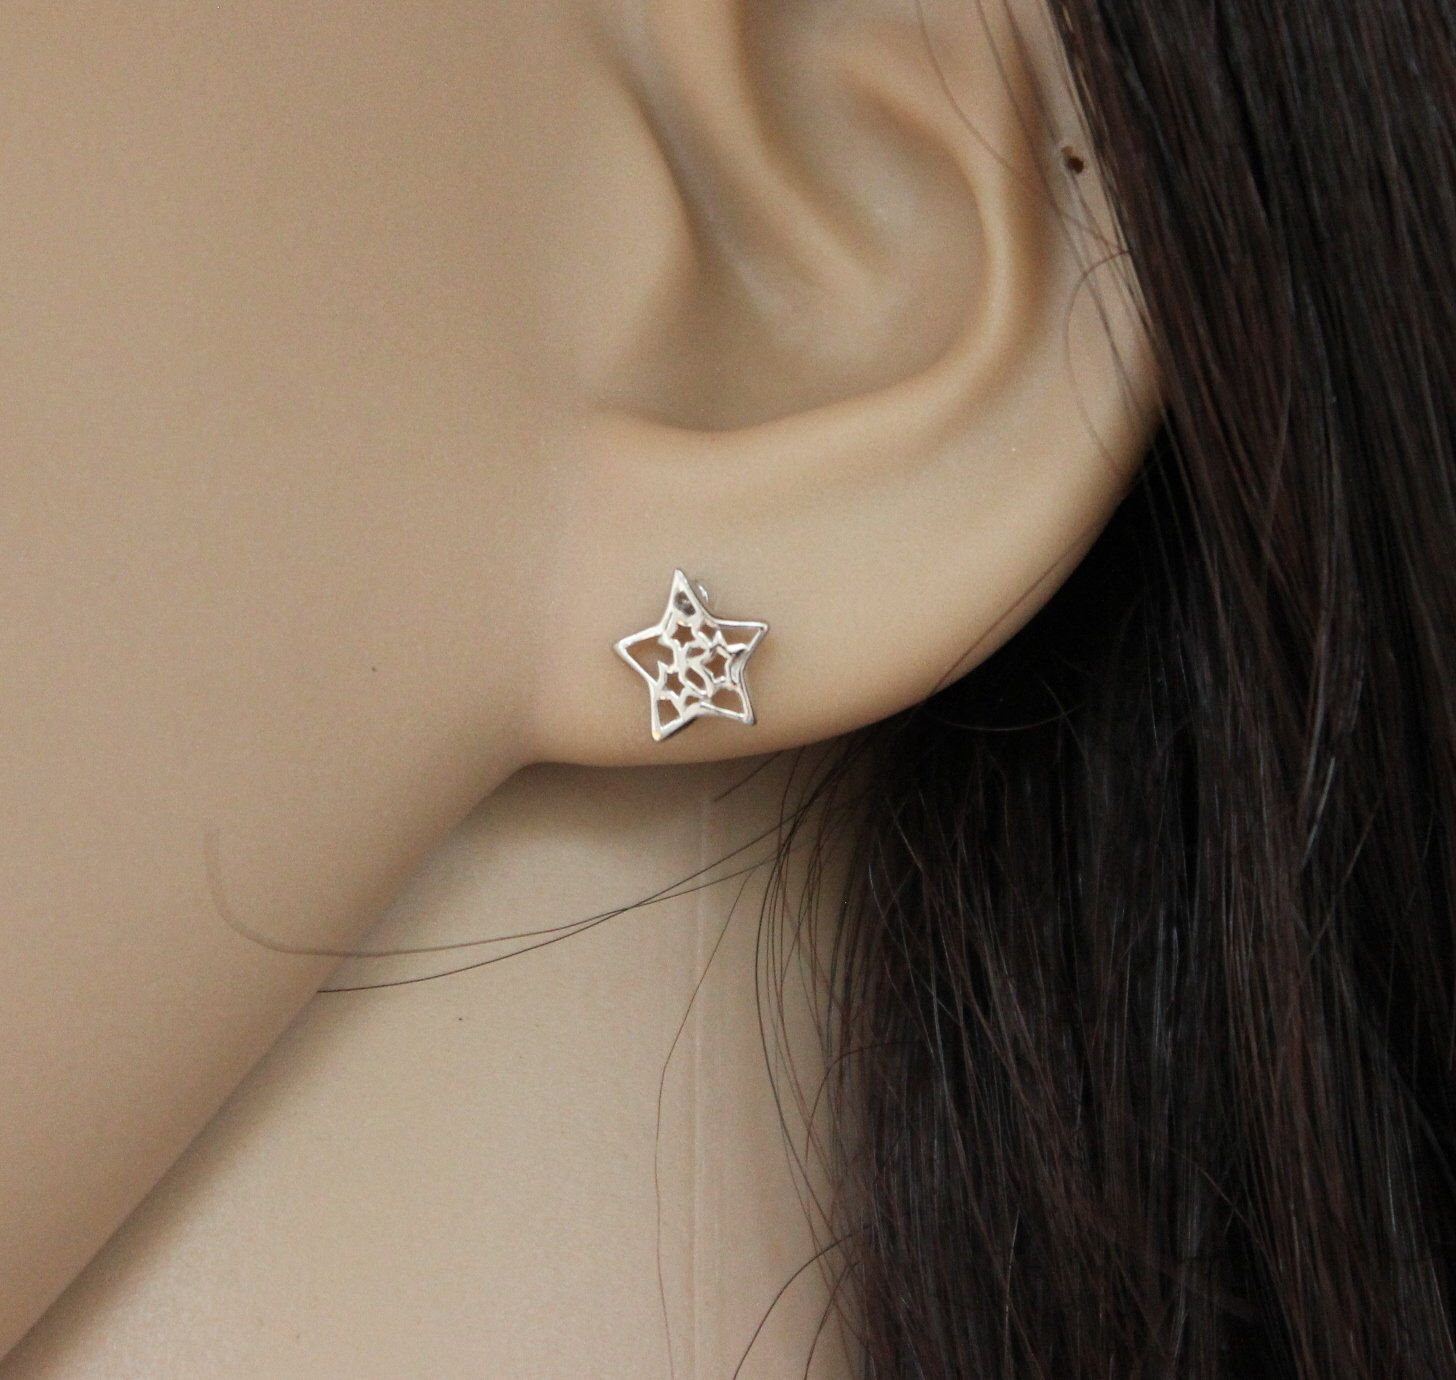 Sterling silver Star Stud Earrings, Star Earrings, Super Star, Tiny Stud Earrings, Dainty Earrings, Children Earrings, Girl Earrings by GreatJewelry4All on Etsy https://www.etsy.com/listing/204179618/sterling-silver-star-stud-earrings-star